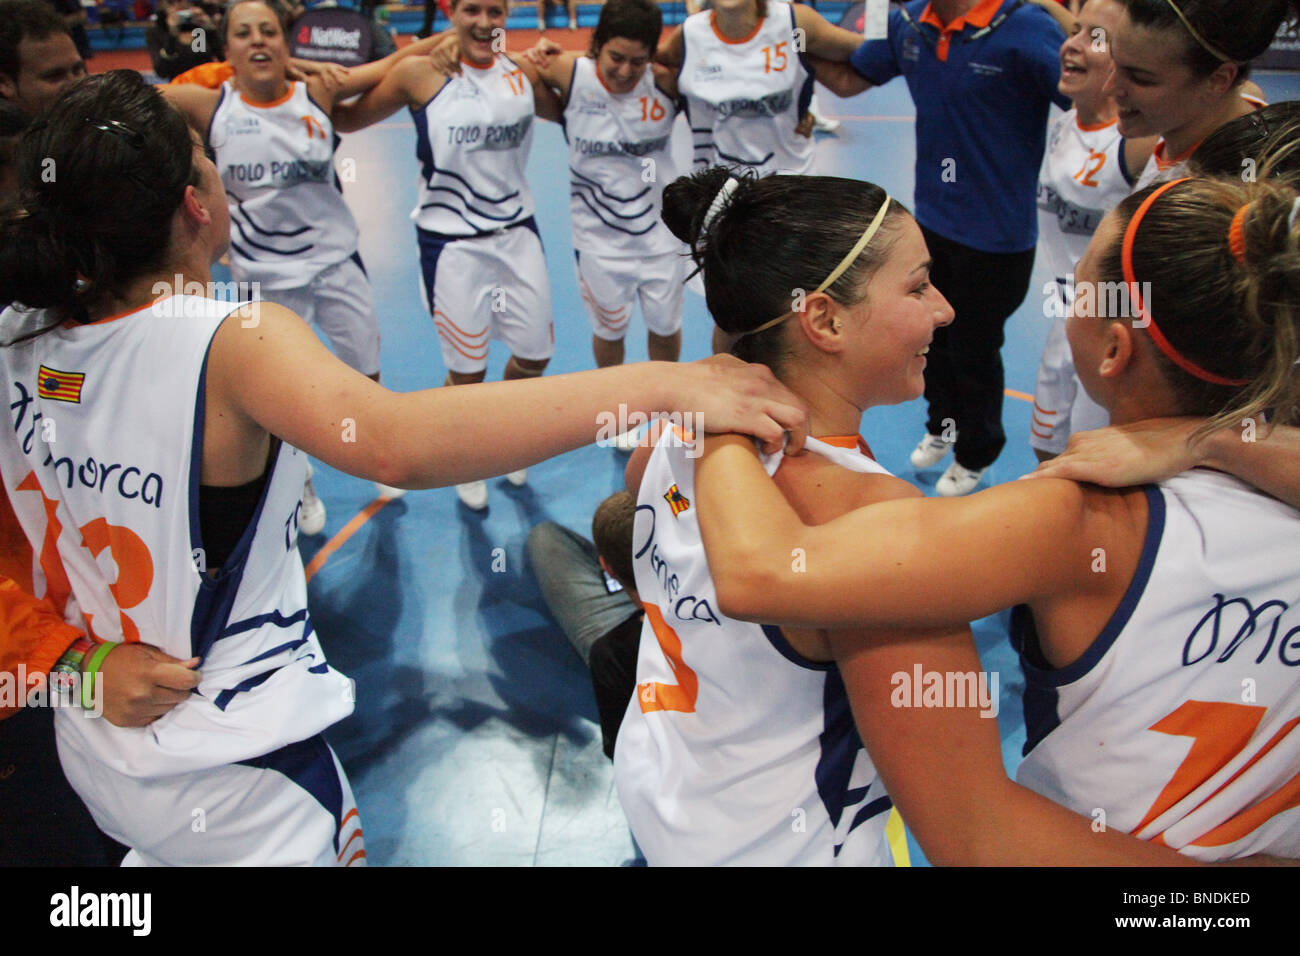 Women's Basketball Final Menorca defeat Guernsey NatWest Island Games 2009 in Eckeröhallen on Åland, - Stock Image